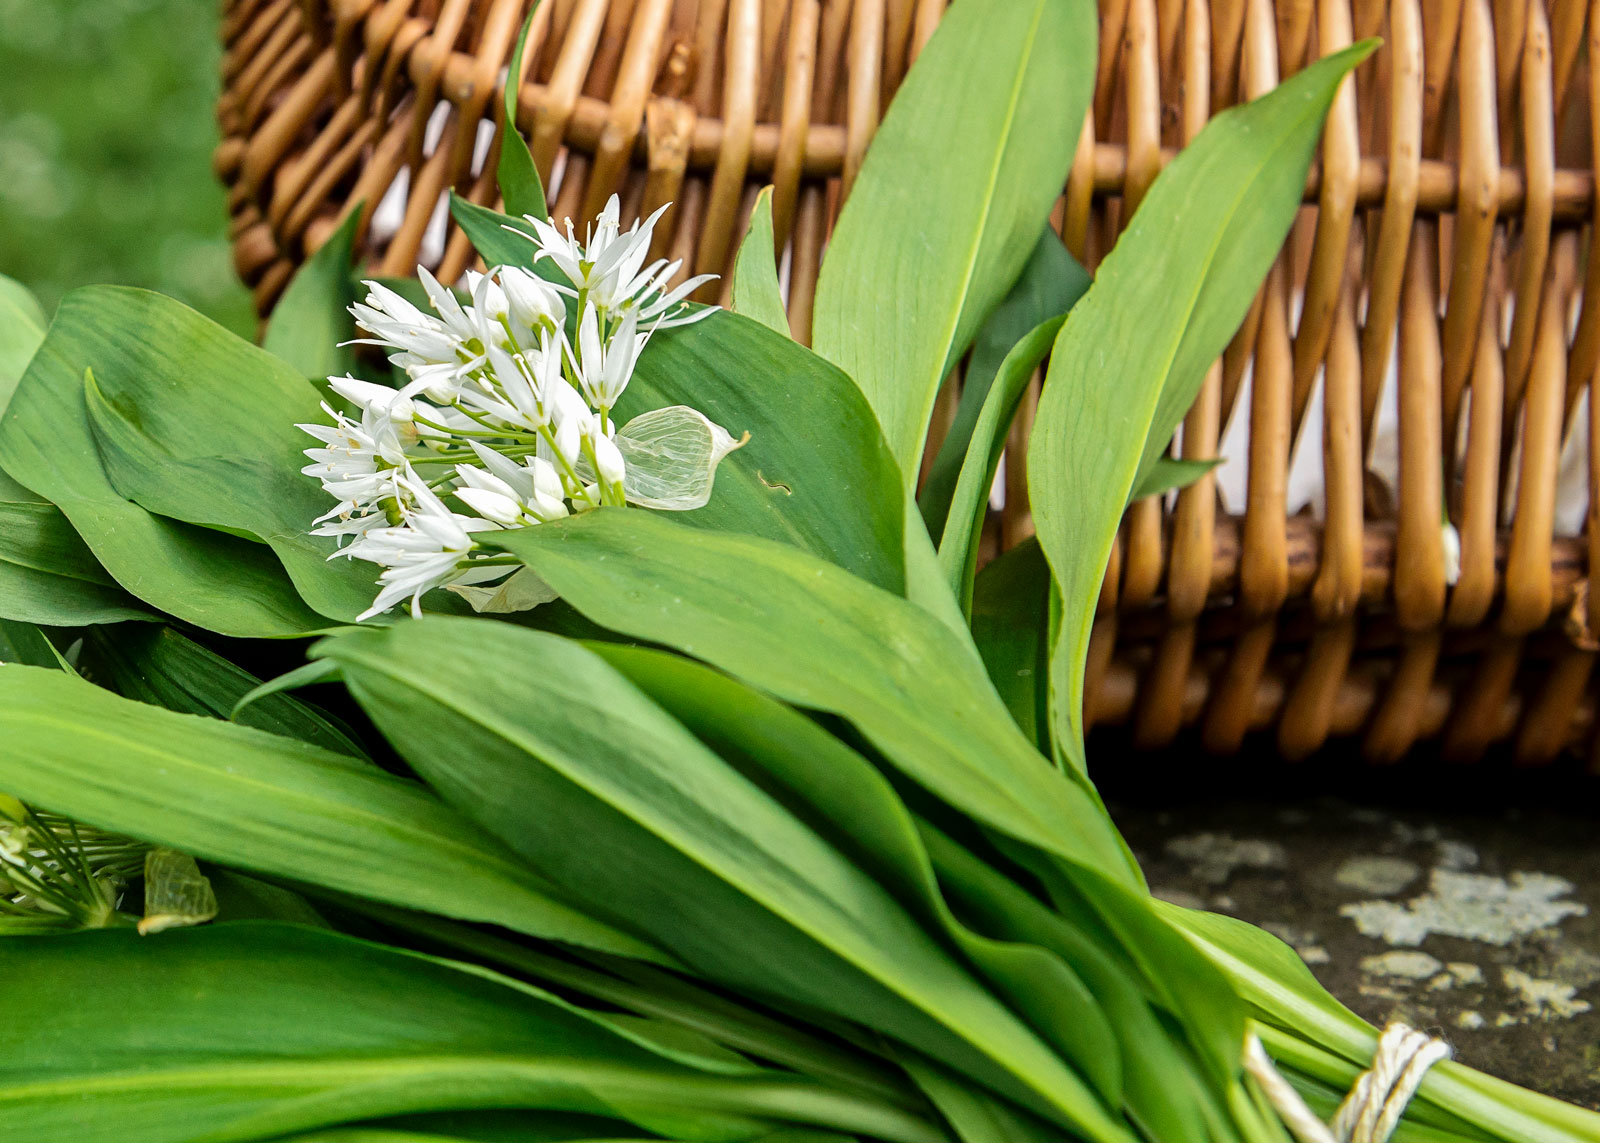 Wild garlic guide: where to find, how to cook it and recipe ideas